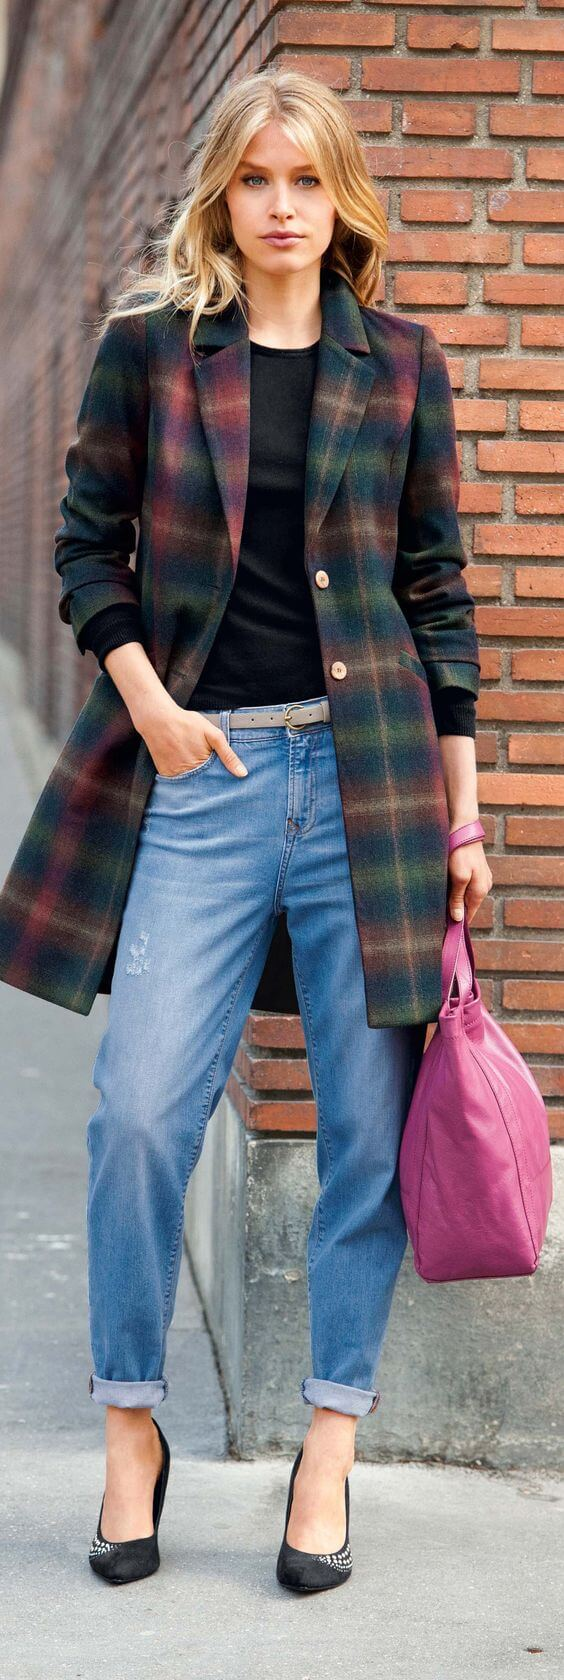 Woman wearing a tartan coat, a top and jeans